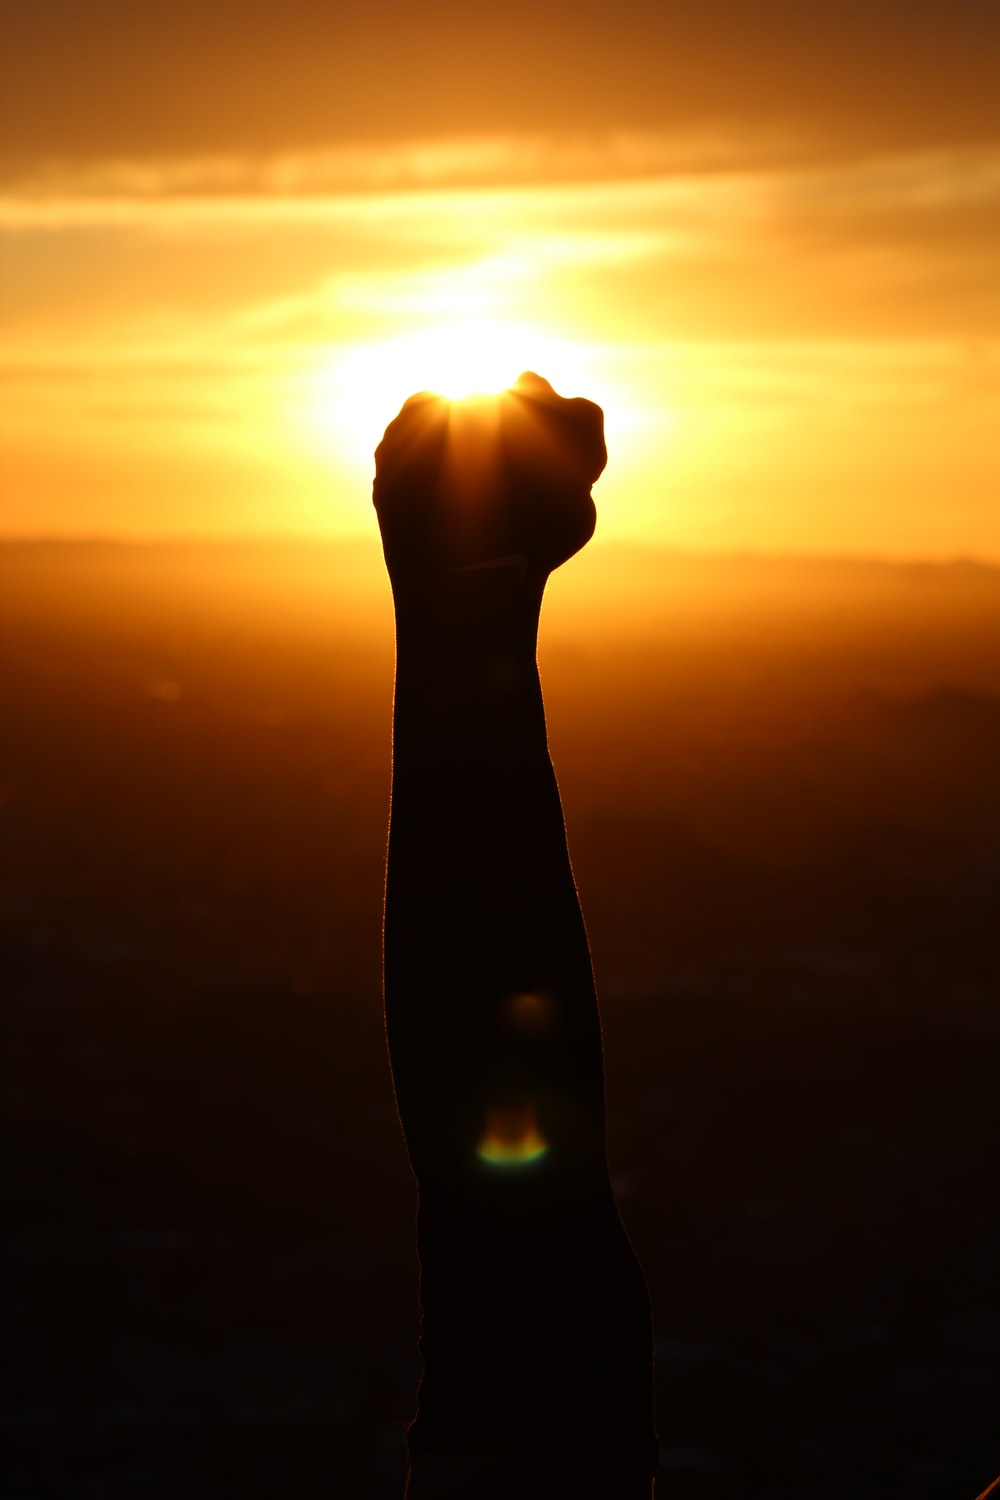 silhouette of person fist during sunset